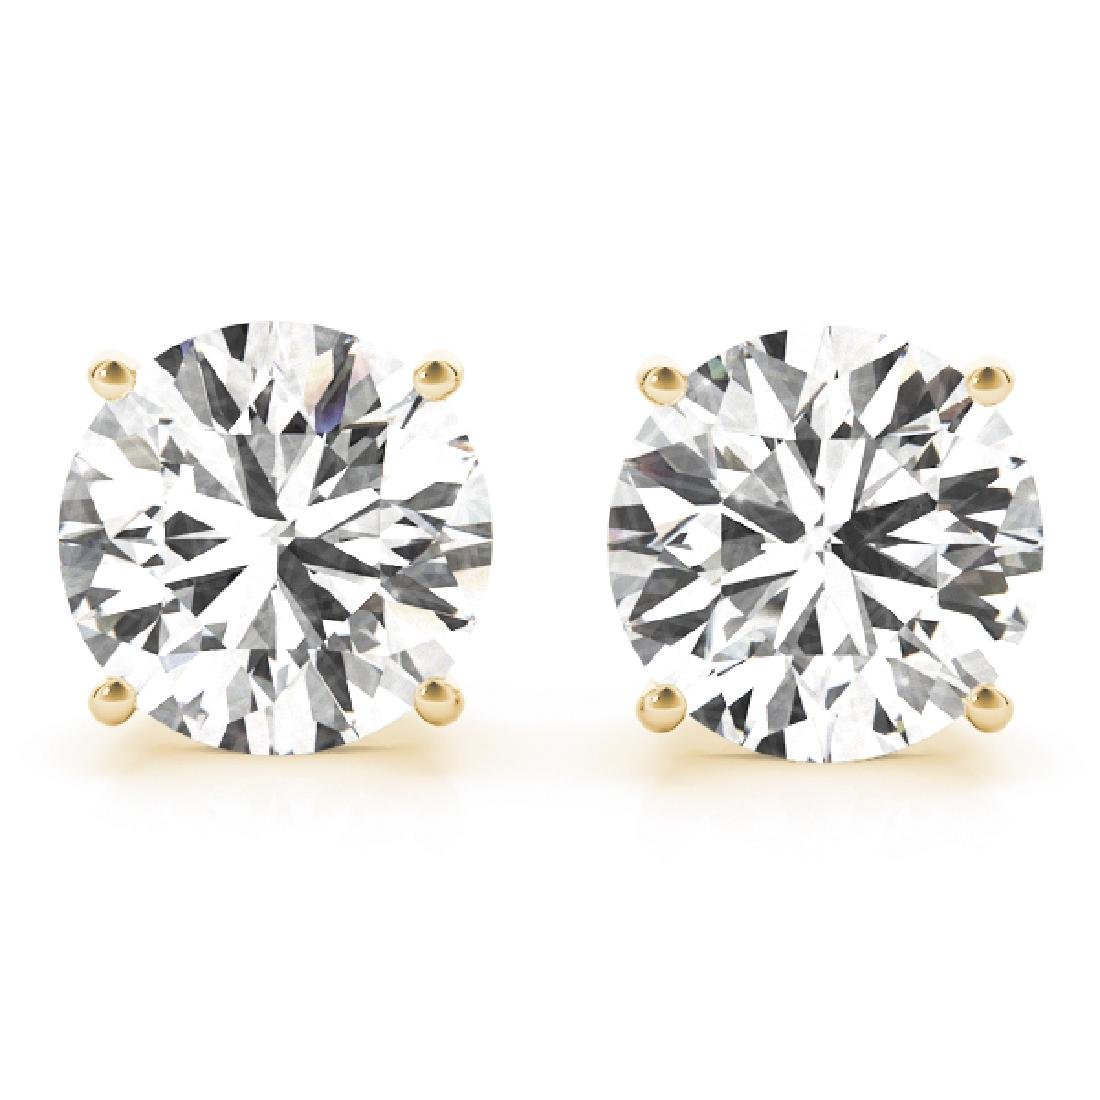 CERTIFIED 0.9 CTW ROUND D/SI1 DIAMOND SOLITAIRE EARRING